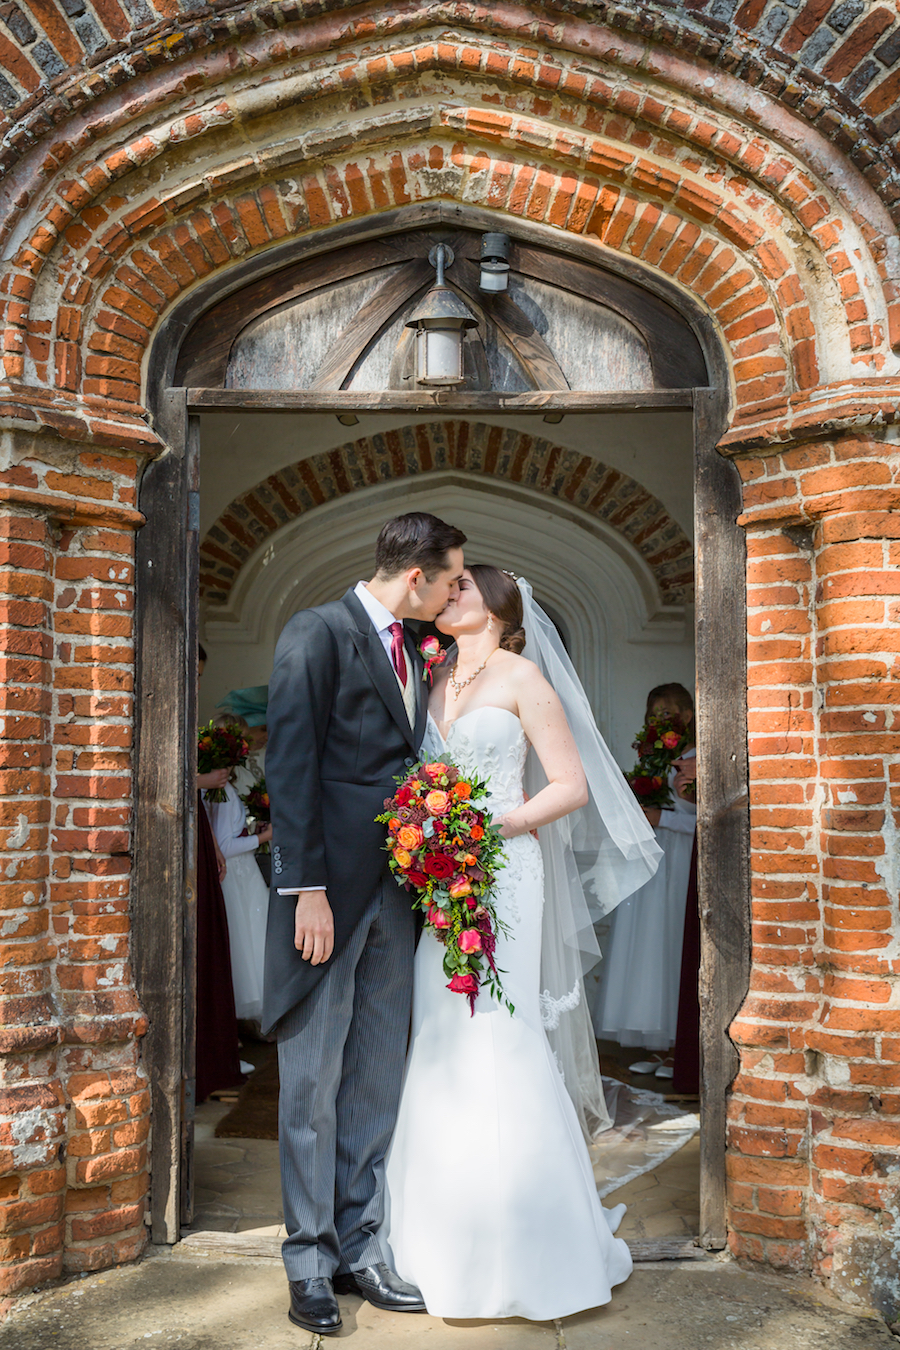 Real wedding by Ayshea Goldberg Photography at Layer Marney Tower (16)